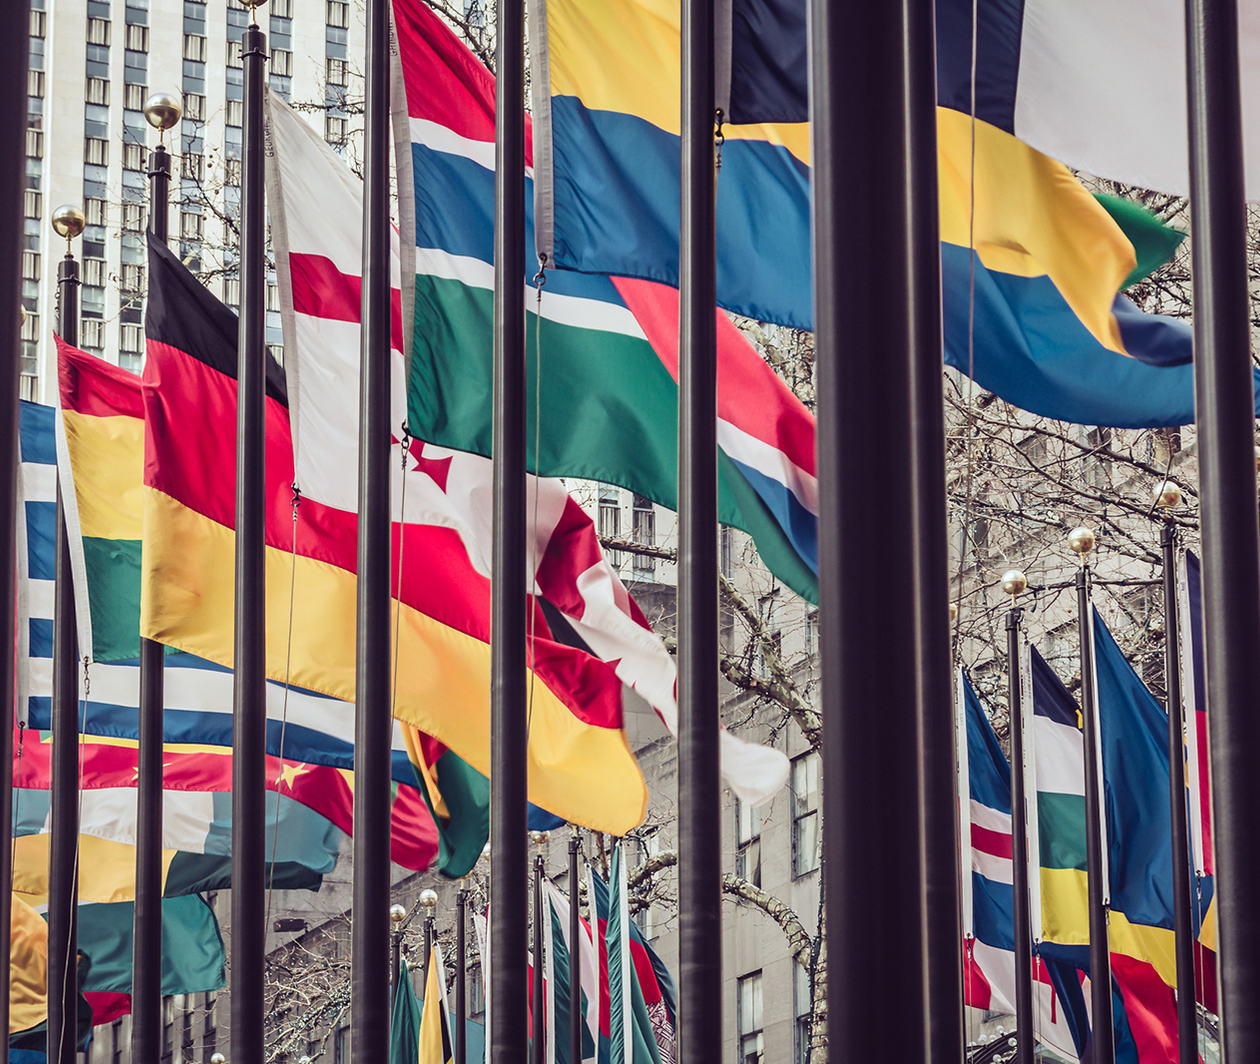 (SWM517.4) Health Systems on the World Stage